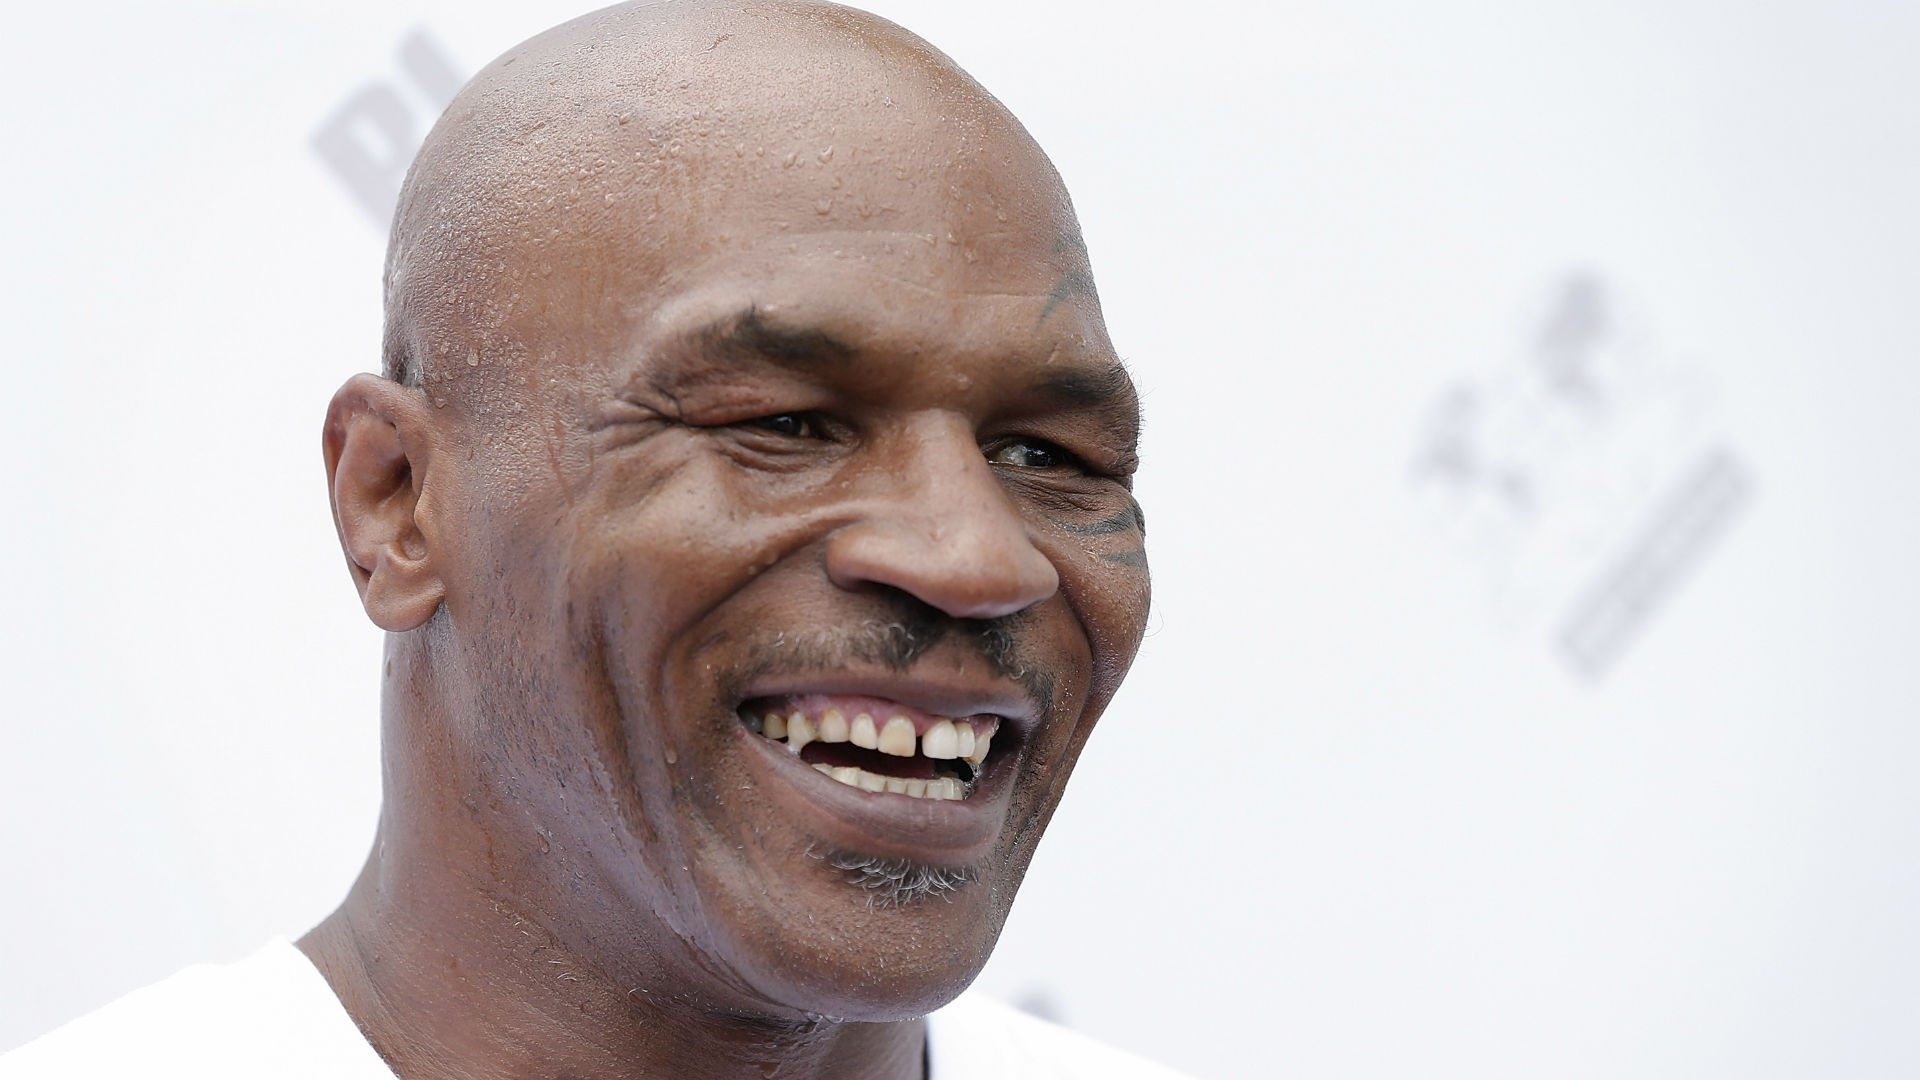 Mike Tyson Wallpapers 4